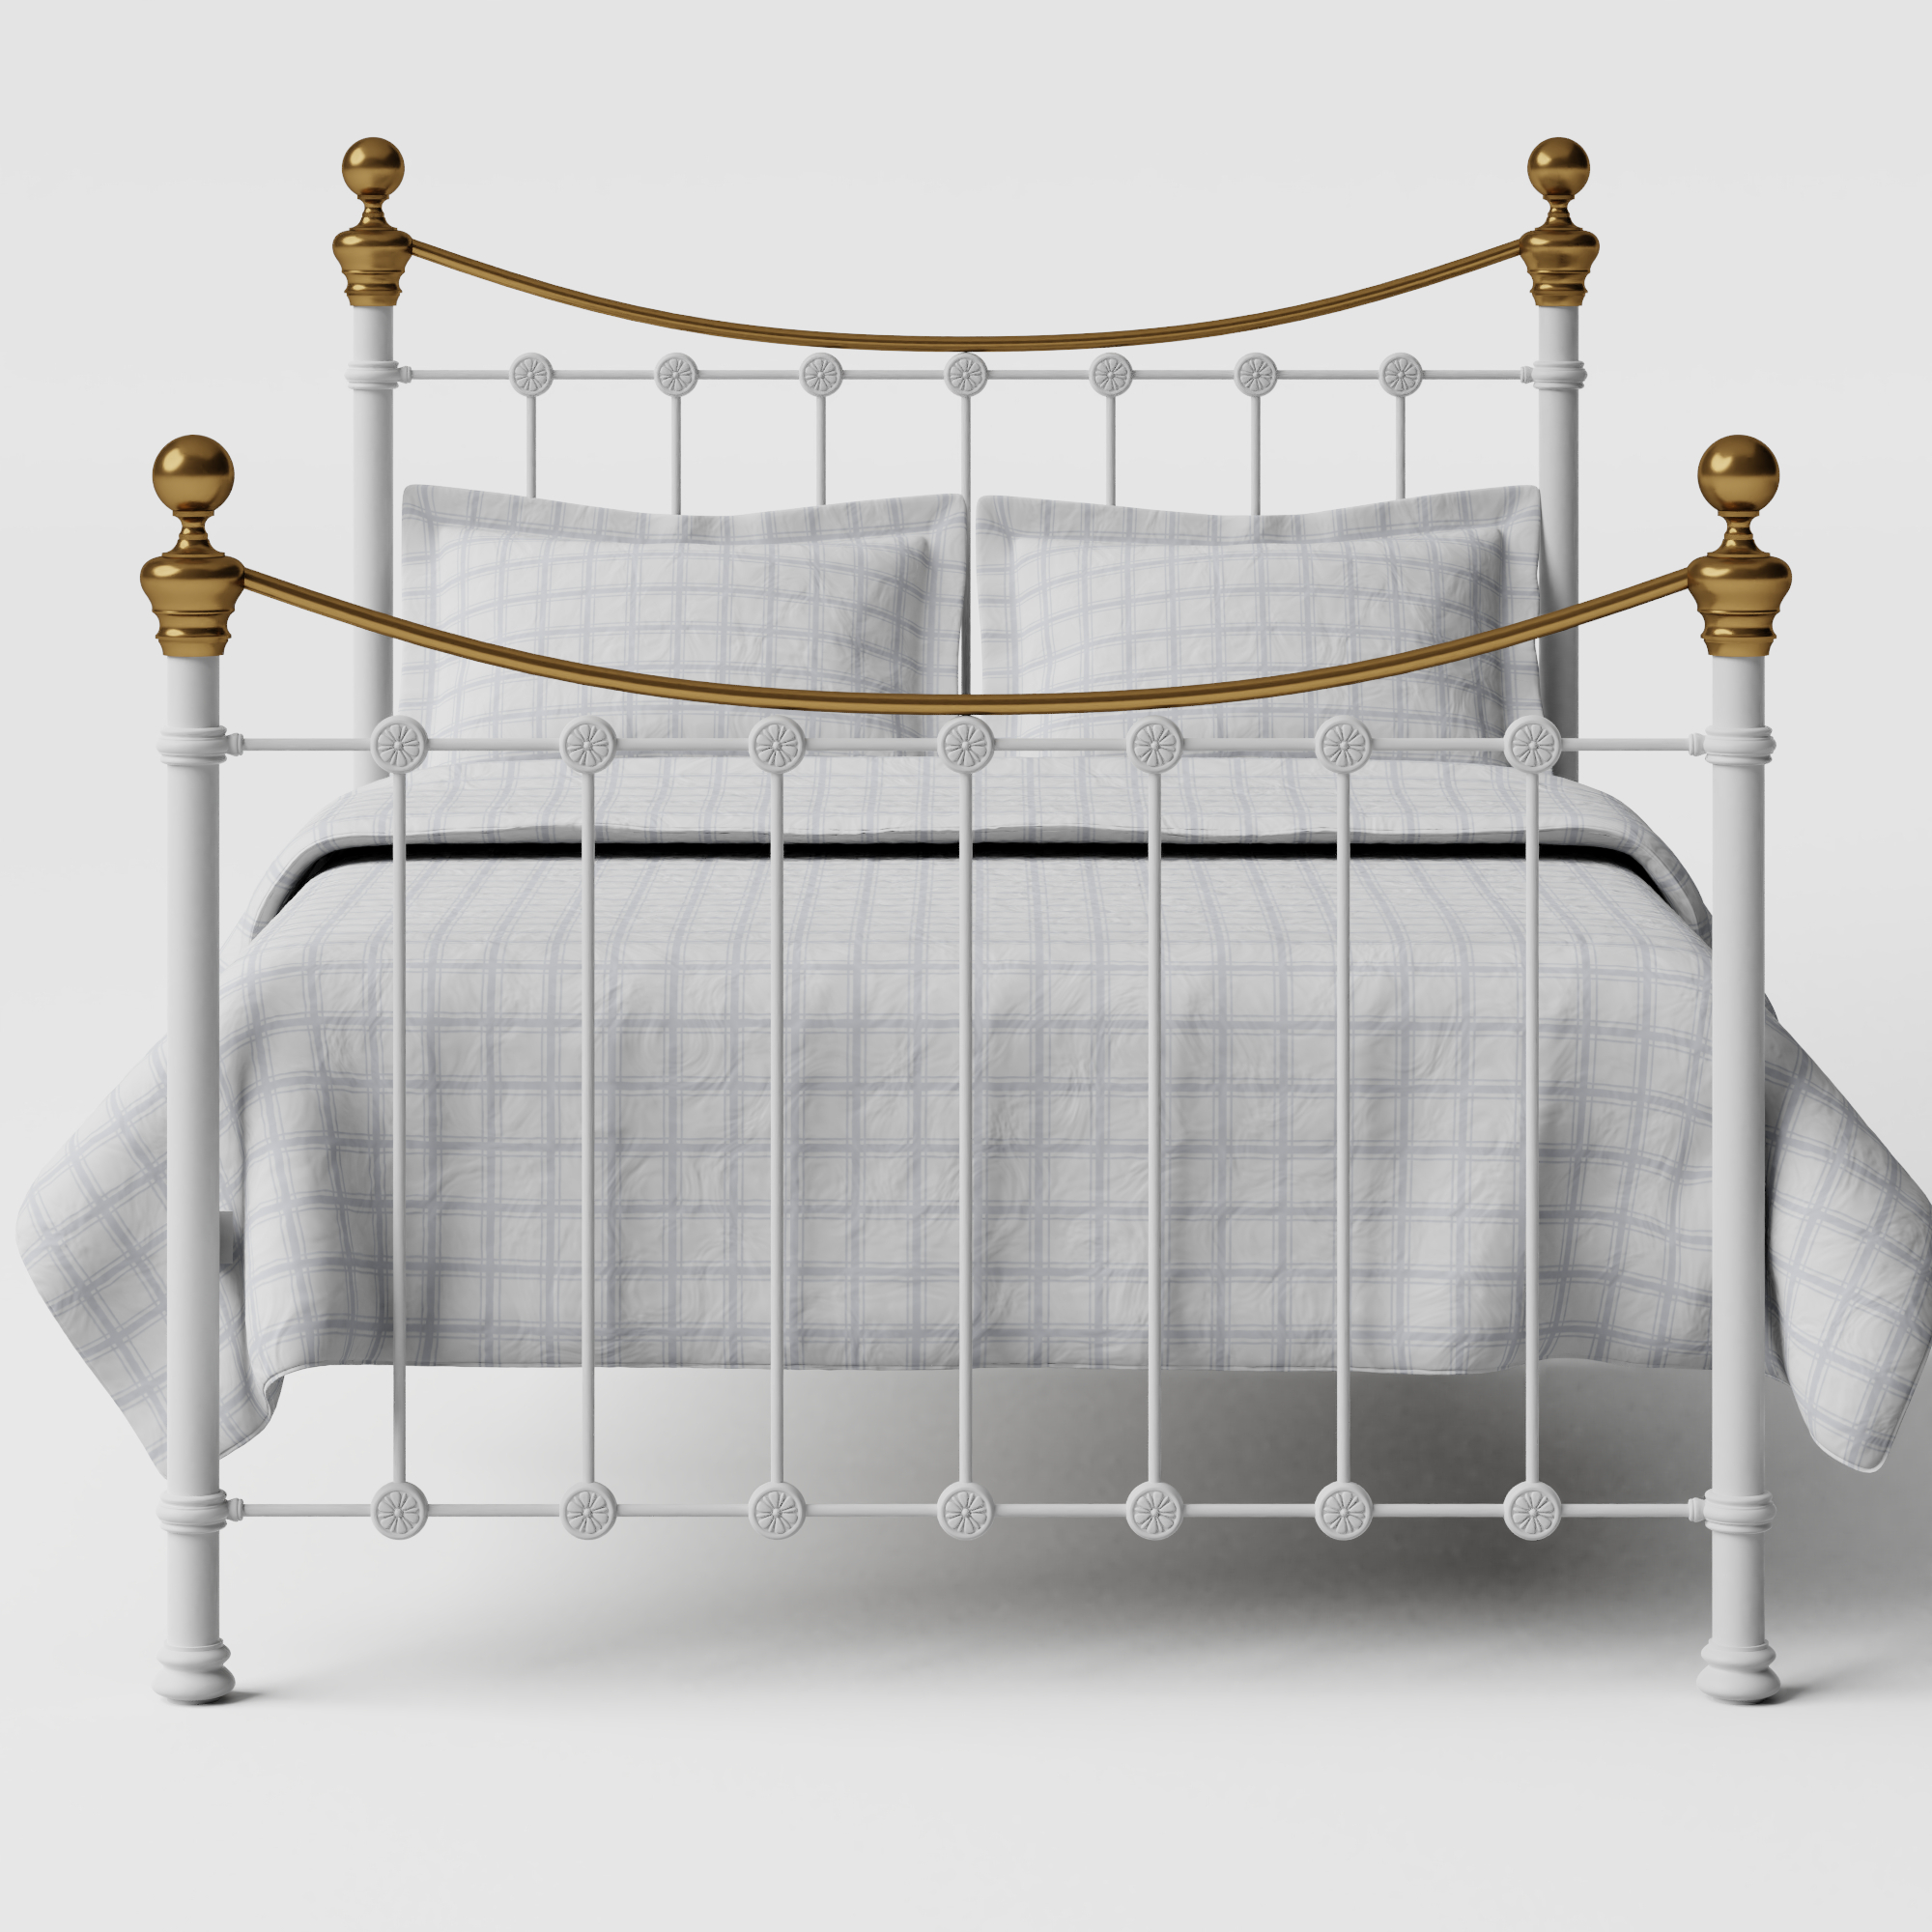 Selkirk iron/metal bed in white